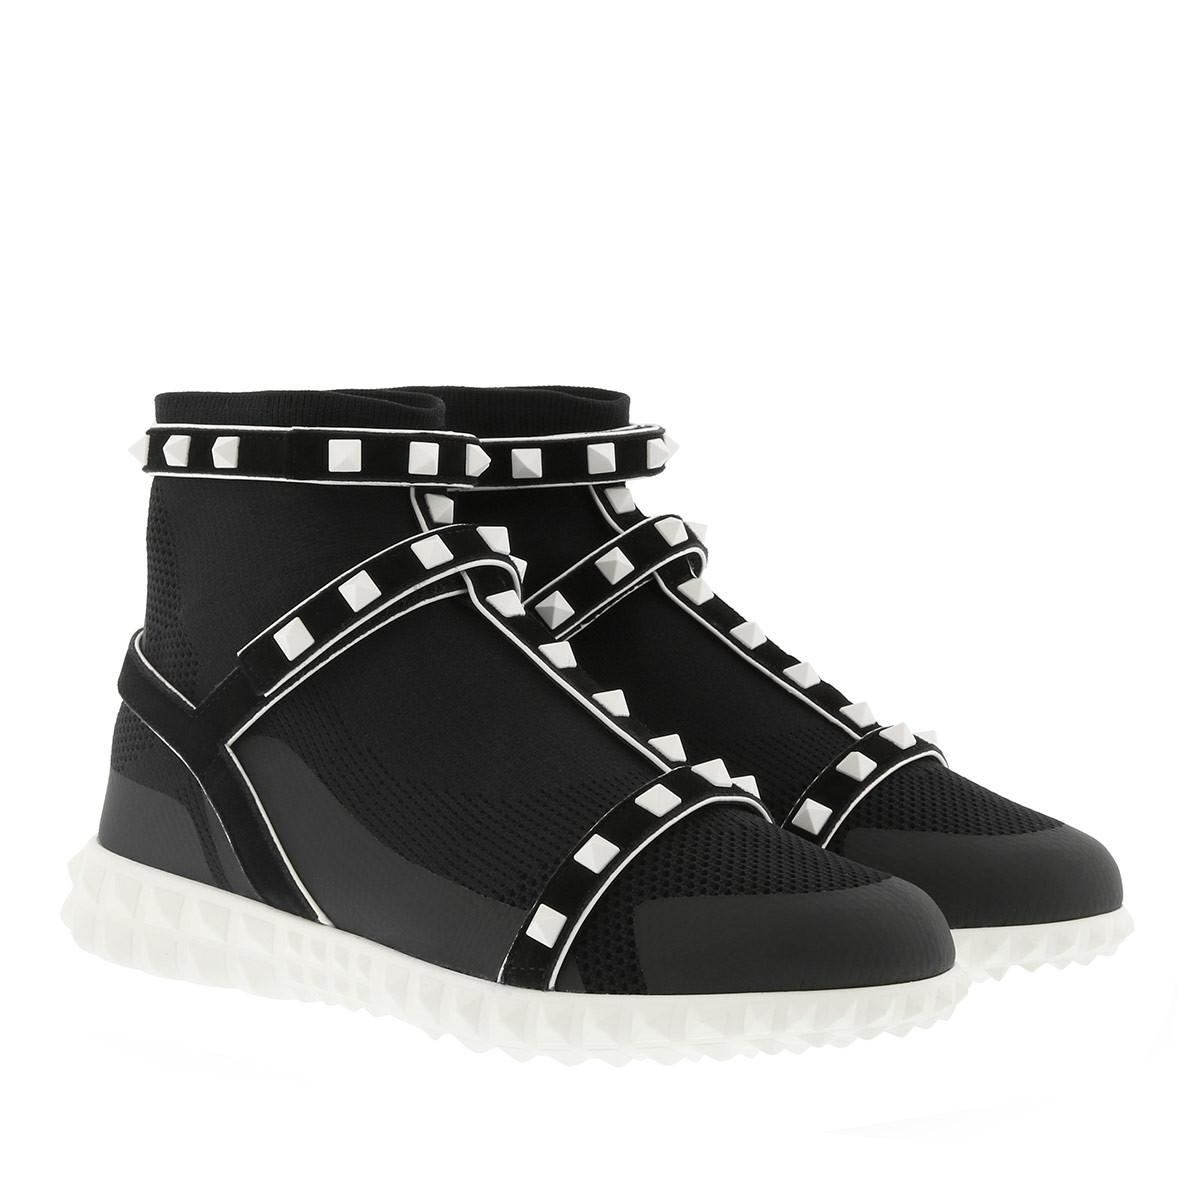 Rockstud Bodytech Hightop Sneakers in Black Nylon Valentino